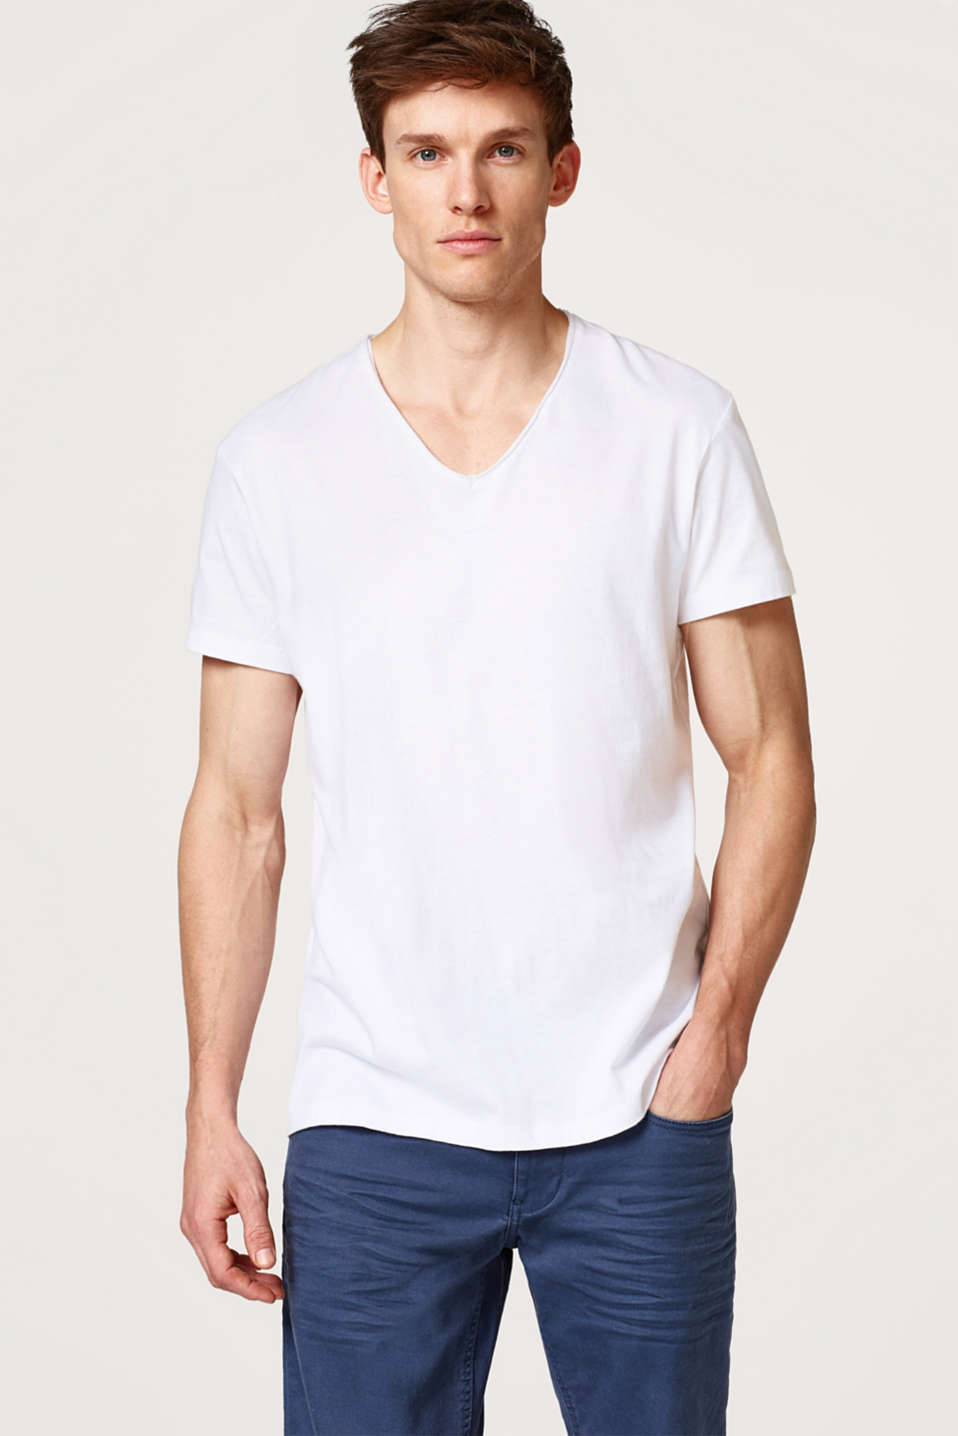 edc - Basic jersey T-shirt, cotton